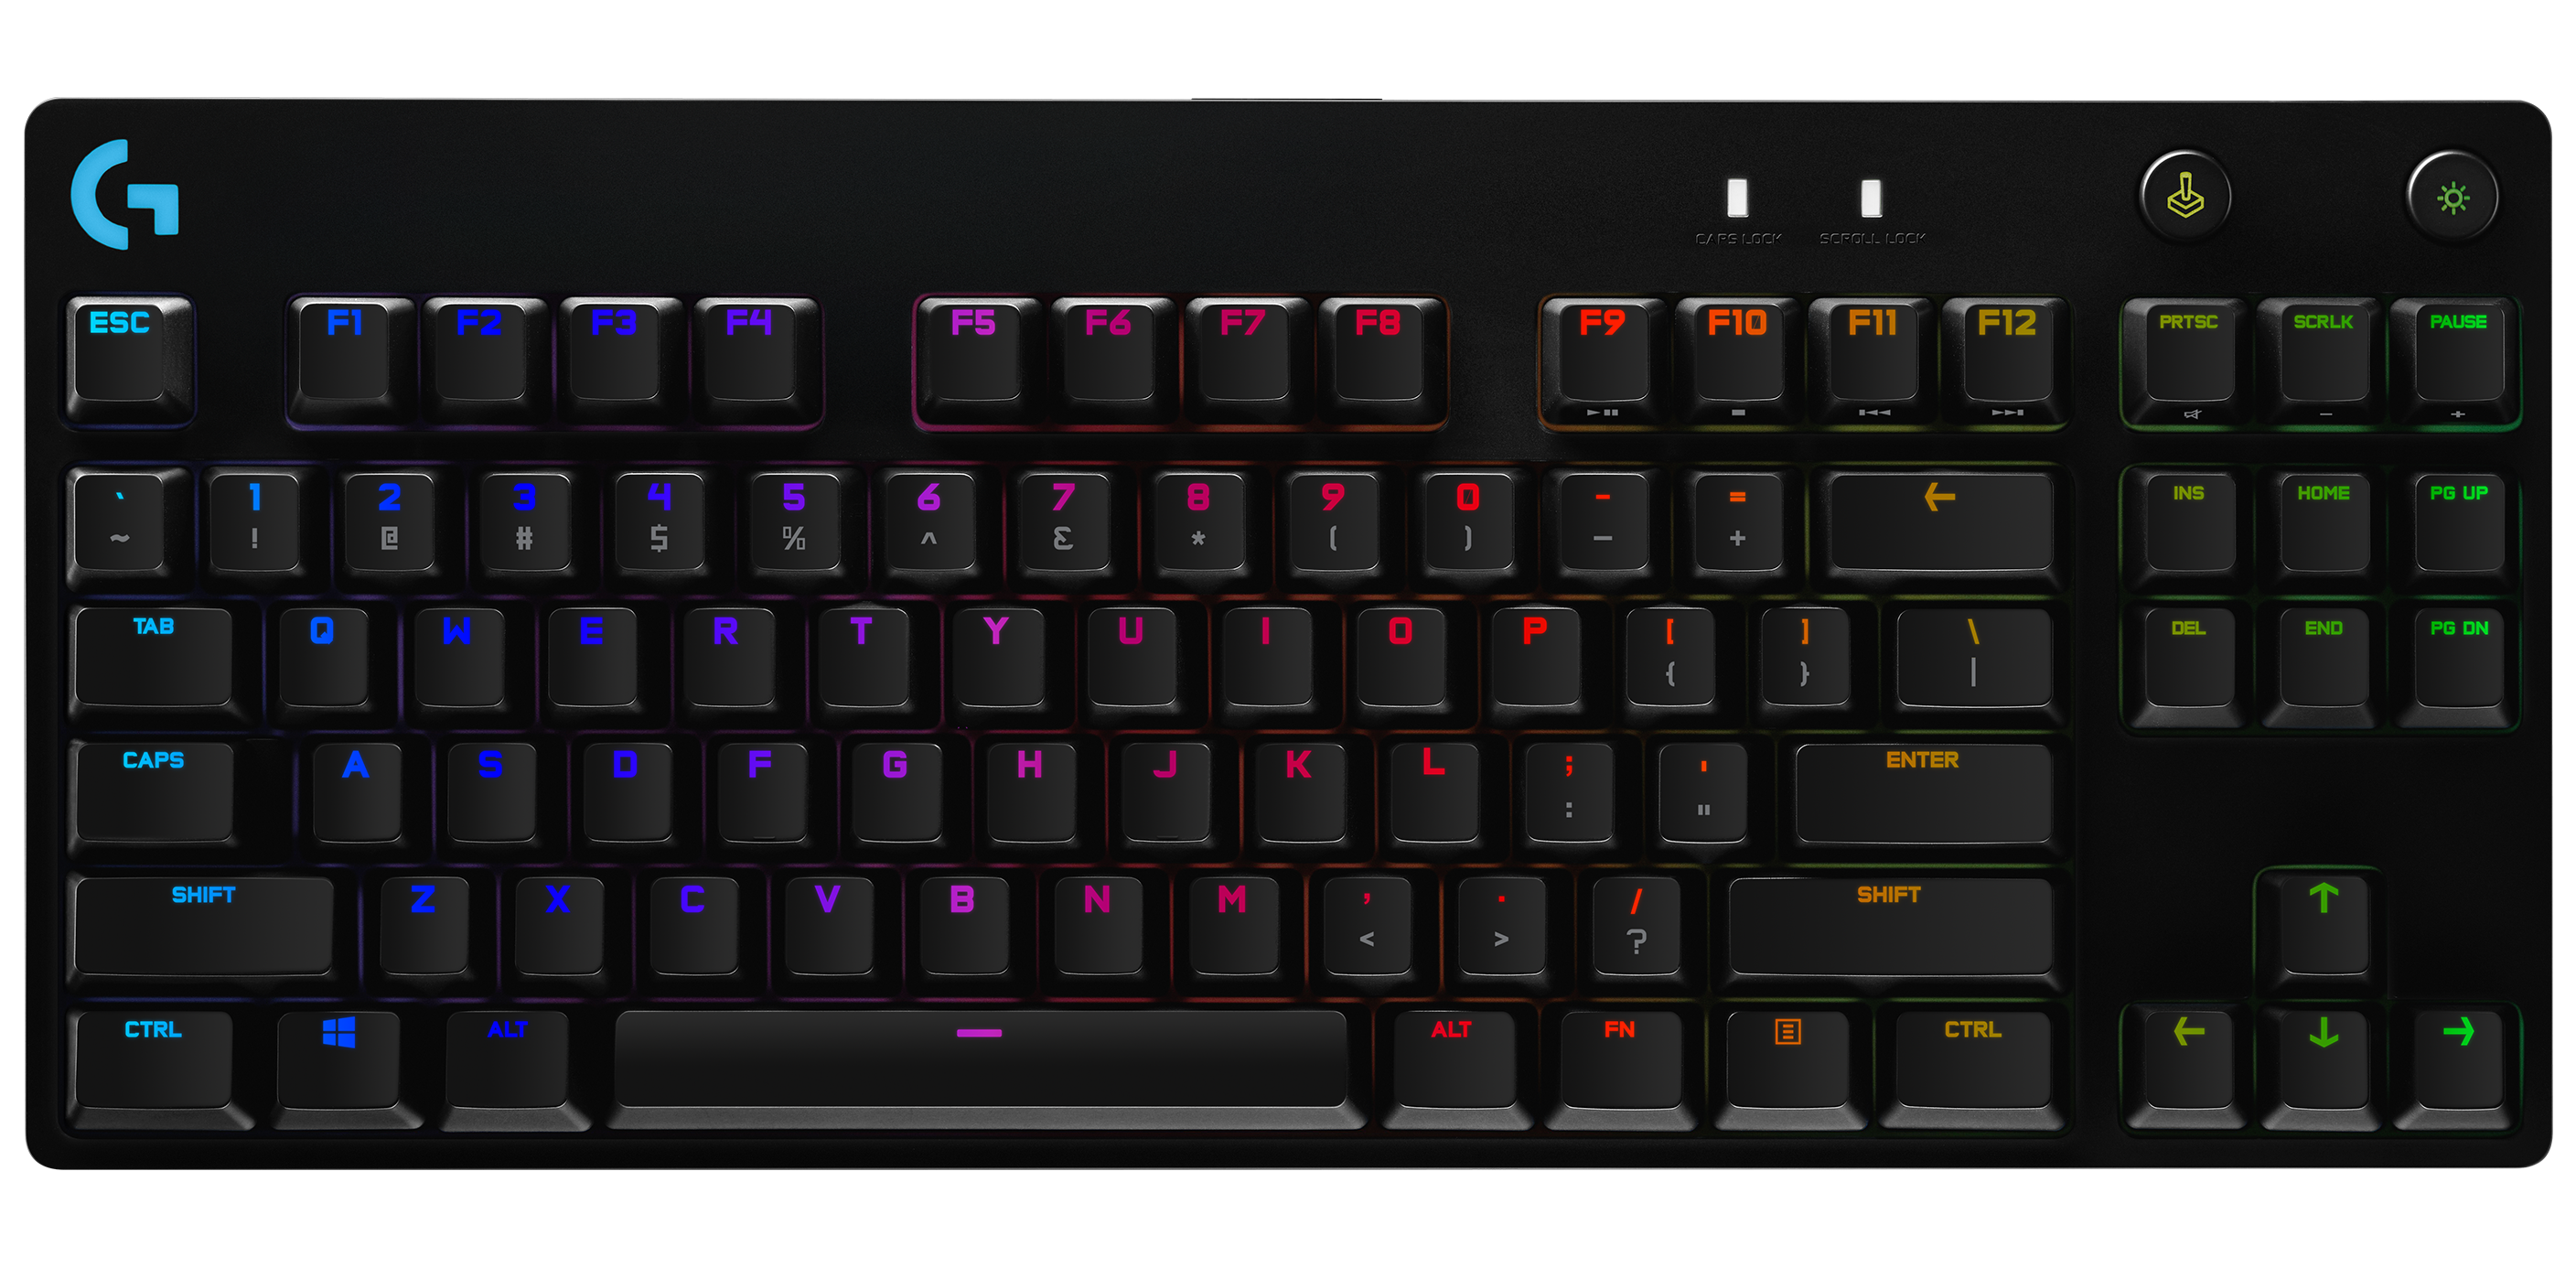 Logitech G PRO Keyboard - Tenkeyless Portable Gaming